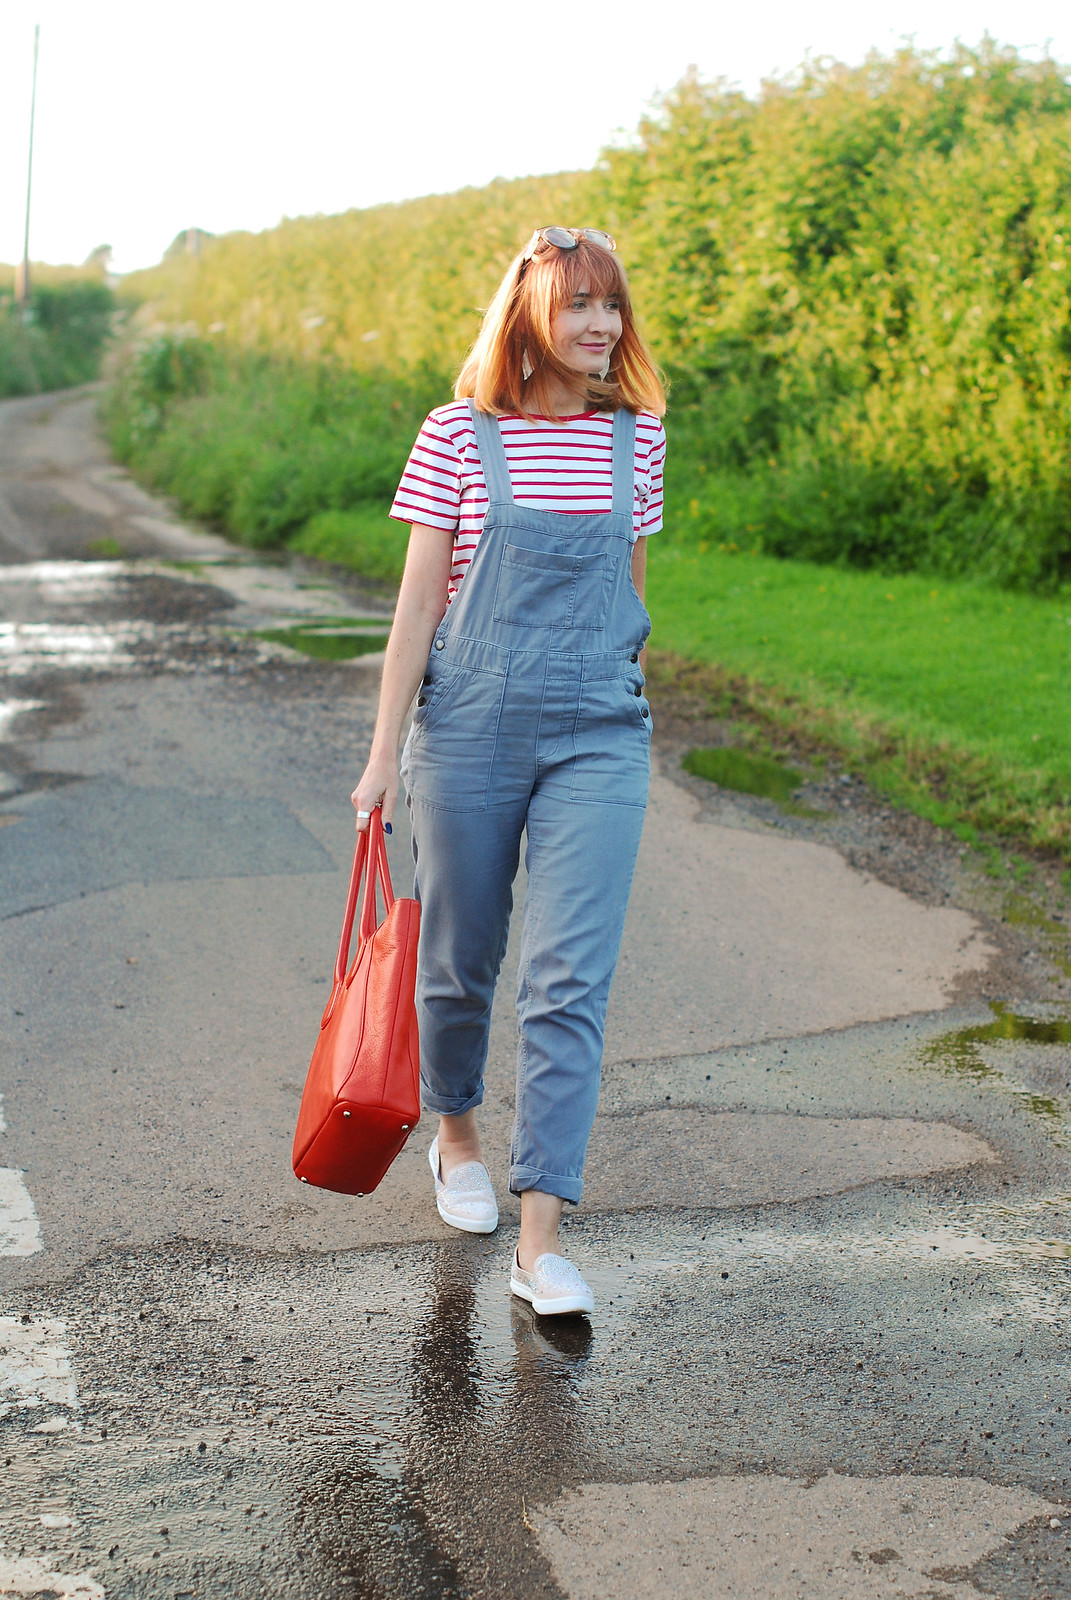 Casual spring summer look: Red Breton stripe t-shirt, grey dungarees, sparkly slip ons, orange tote   Not Dressed As Lamb